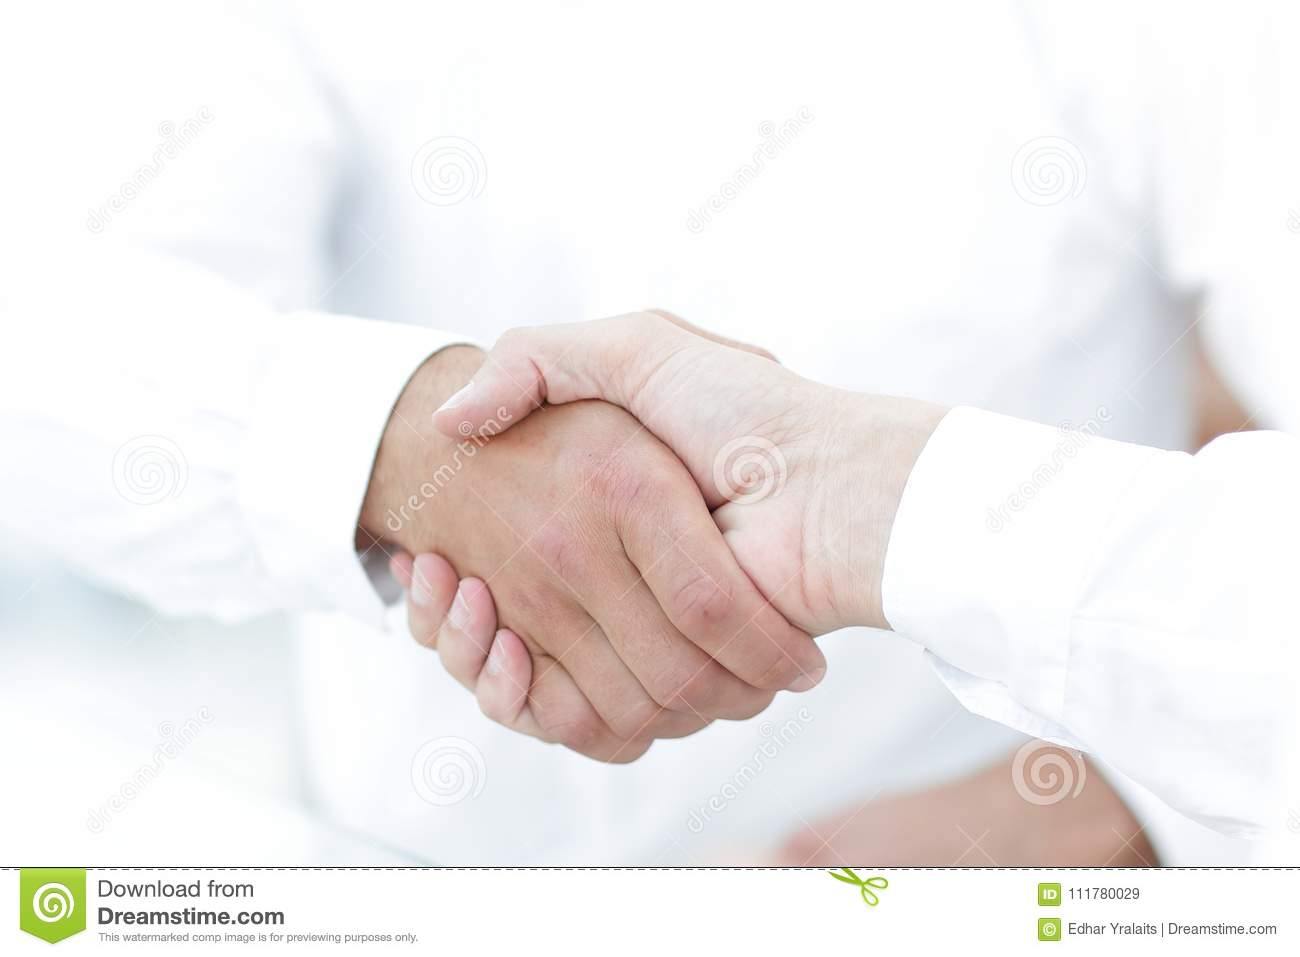 Close-up of business handshake.